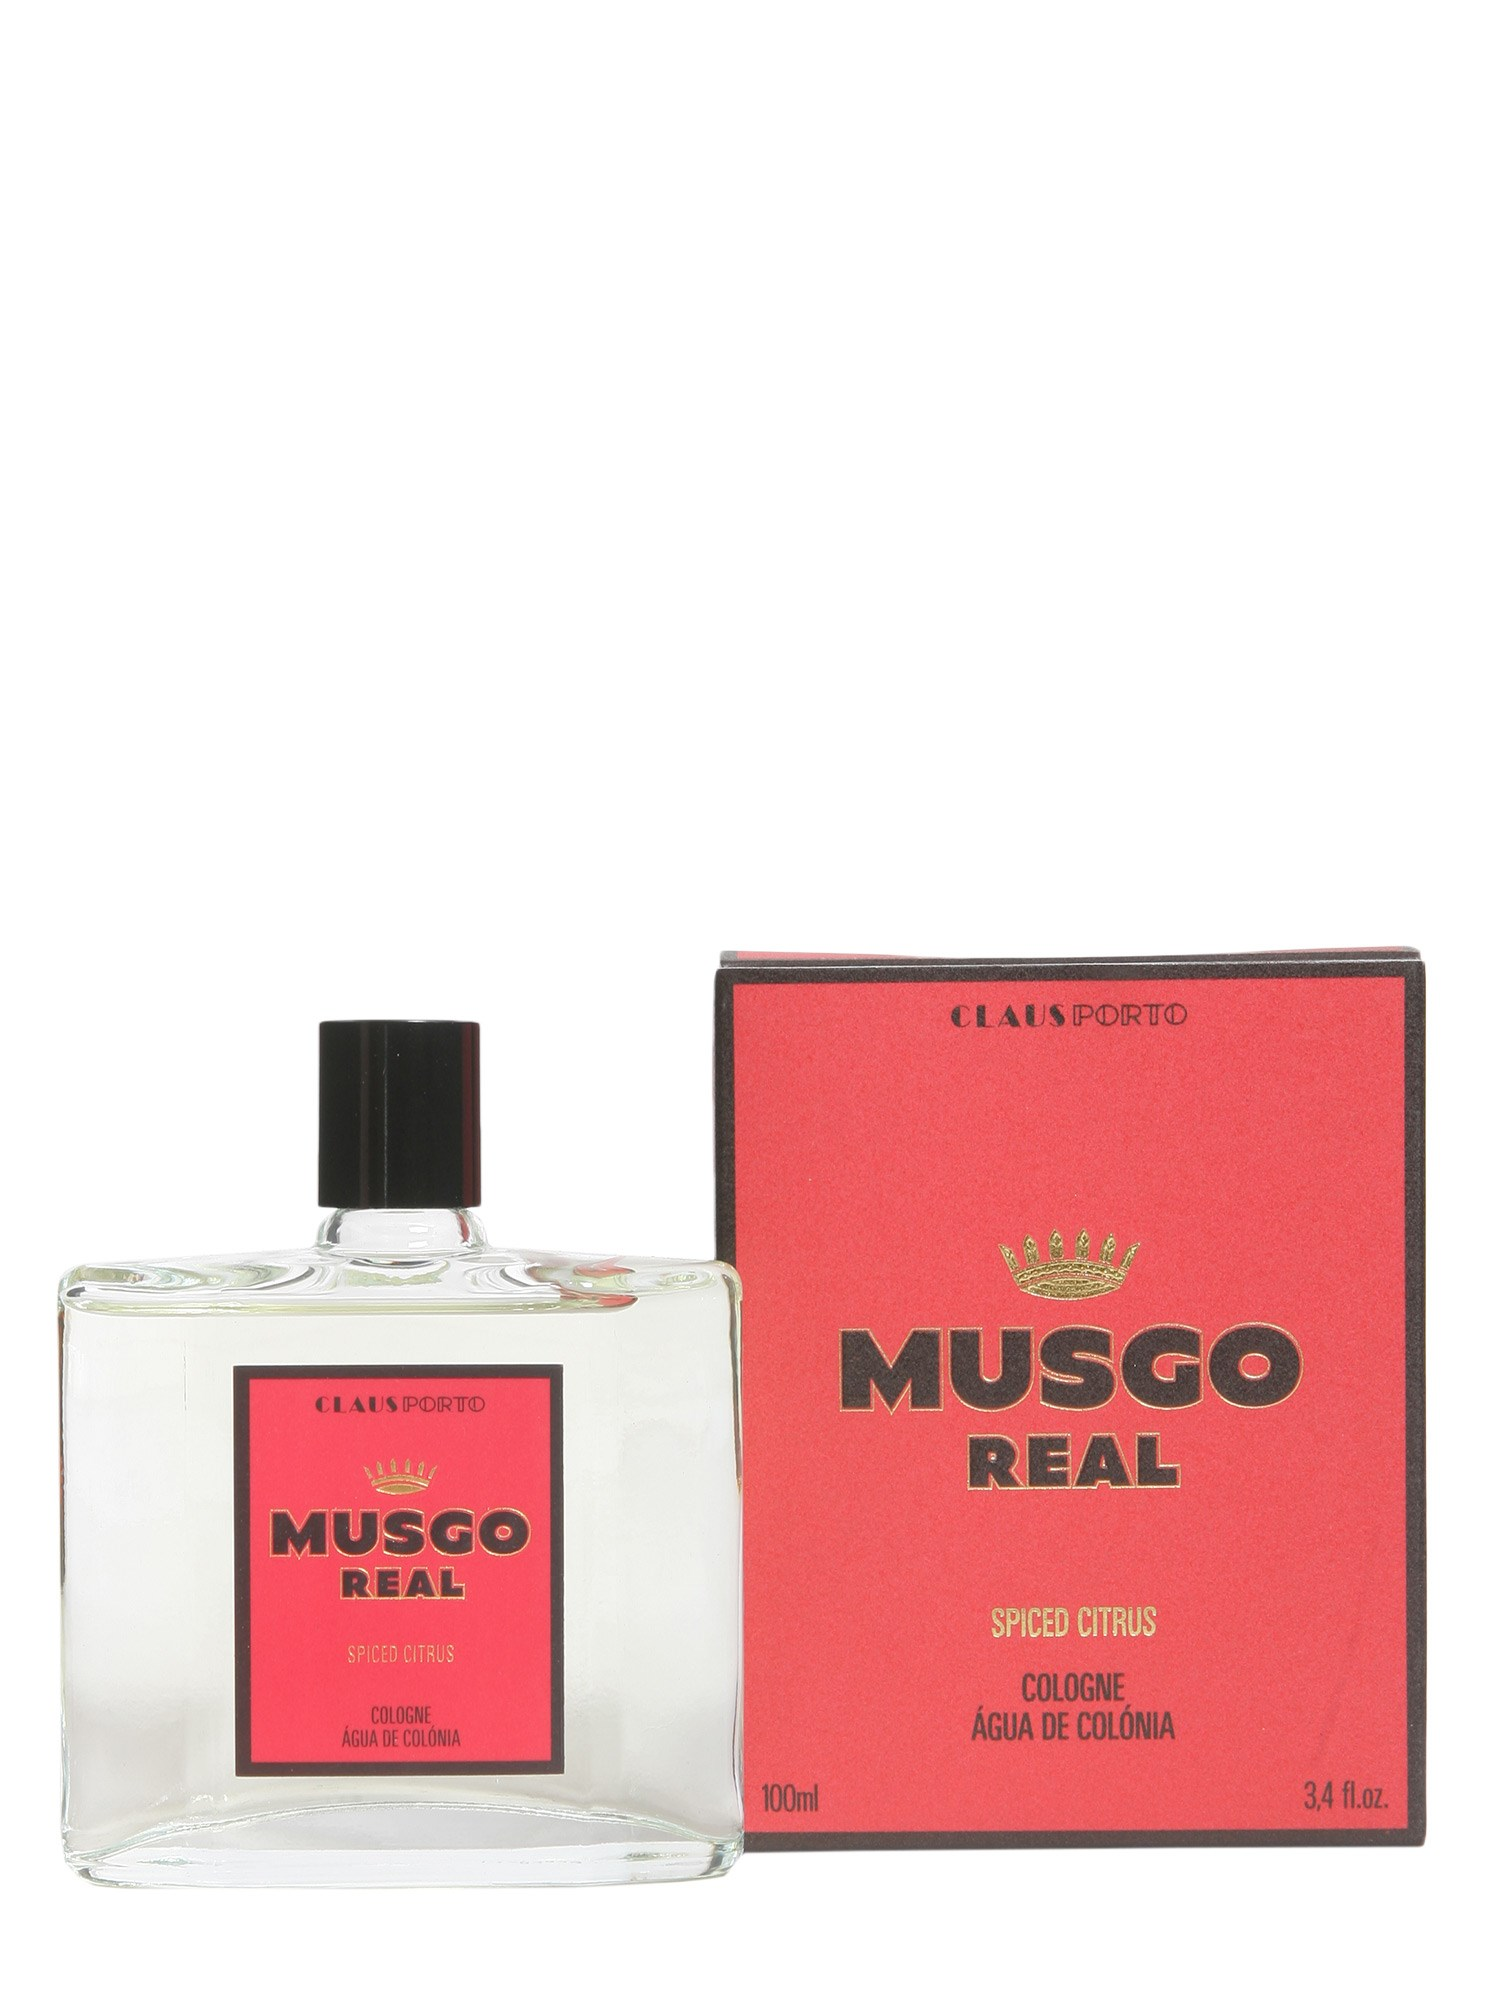 musgo real spiced citrus splash & spray cologne